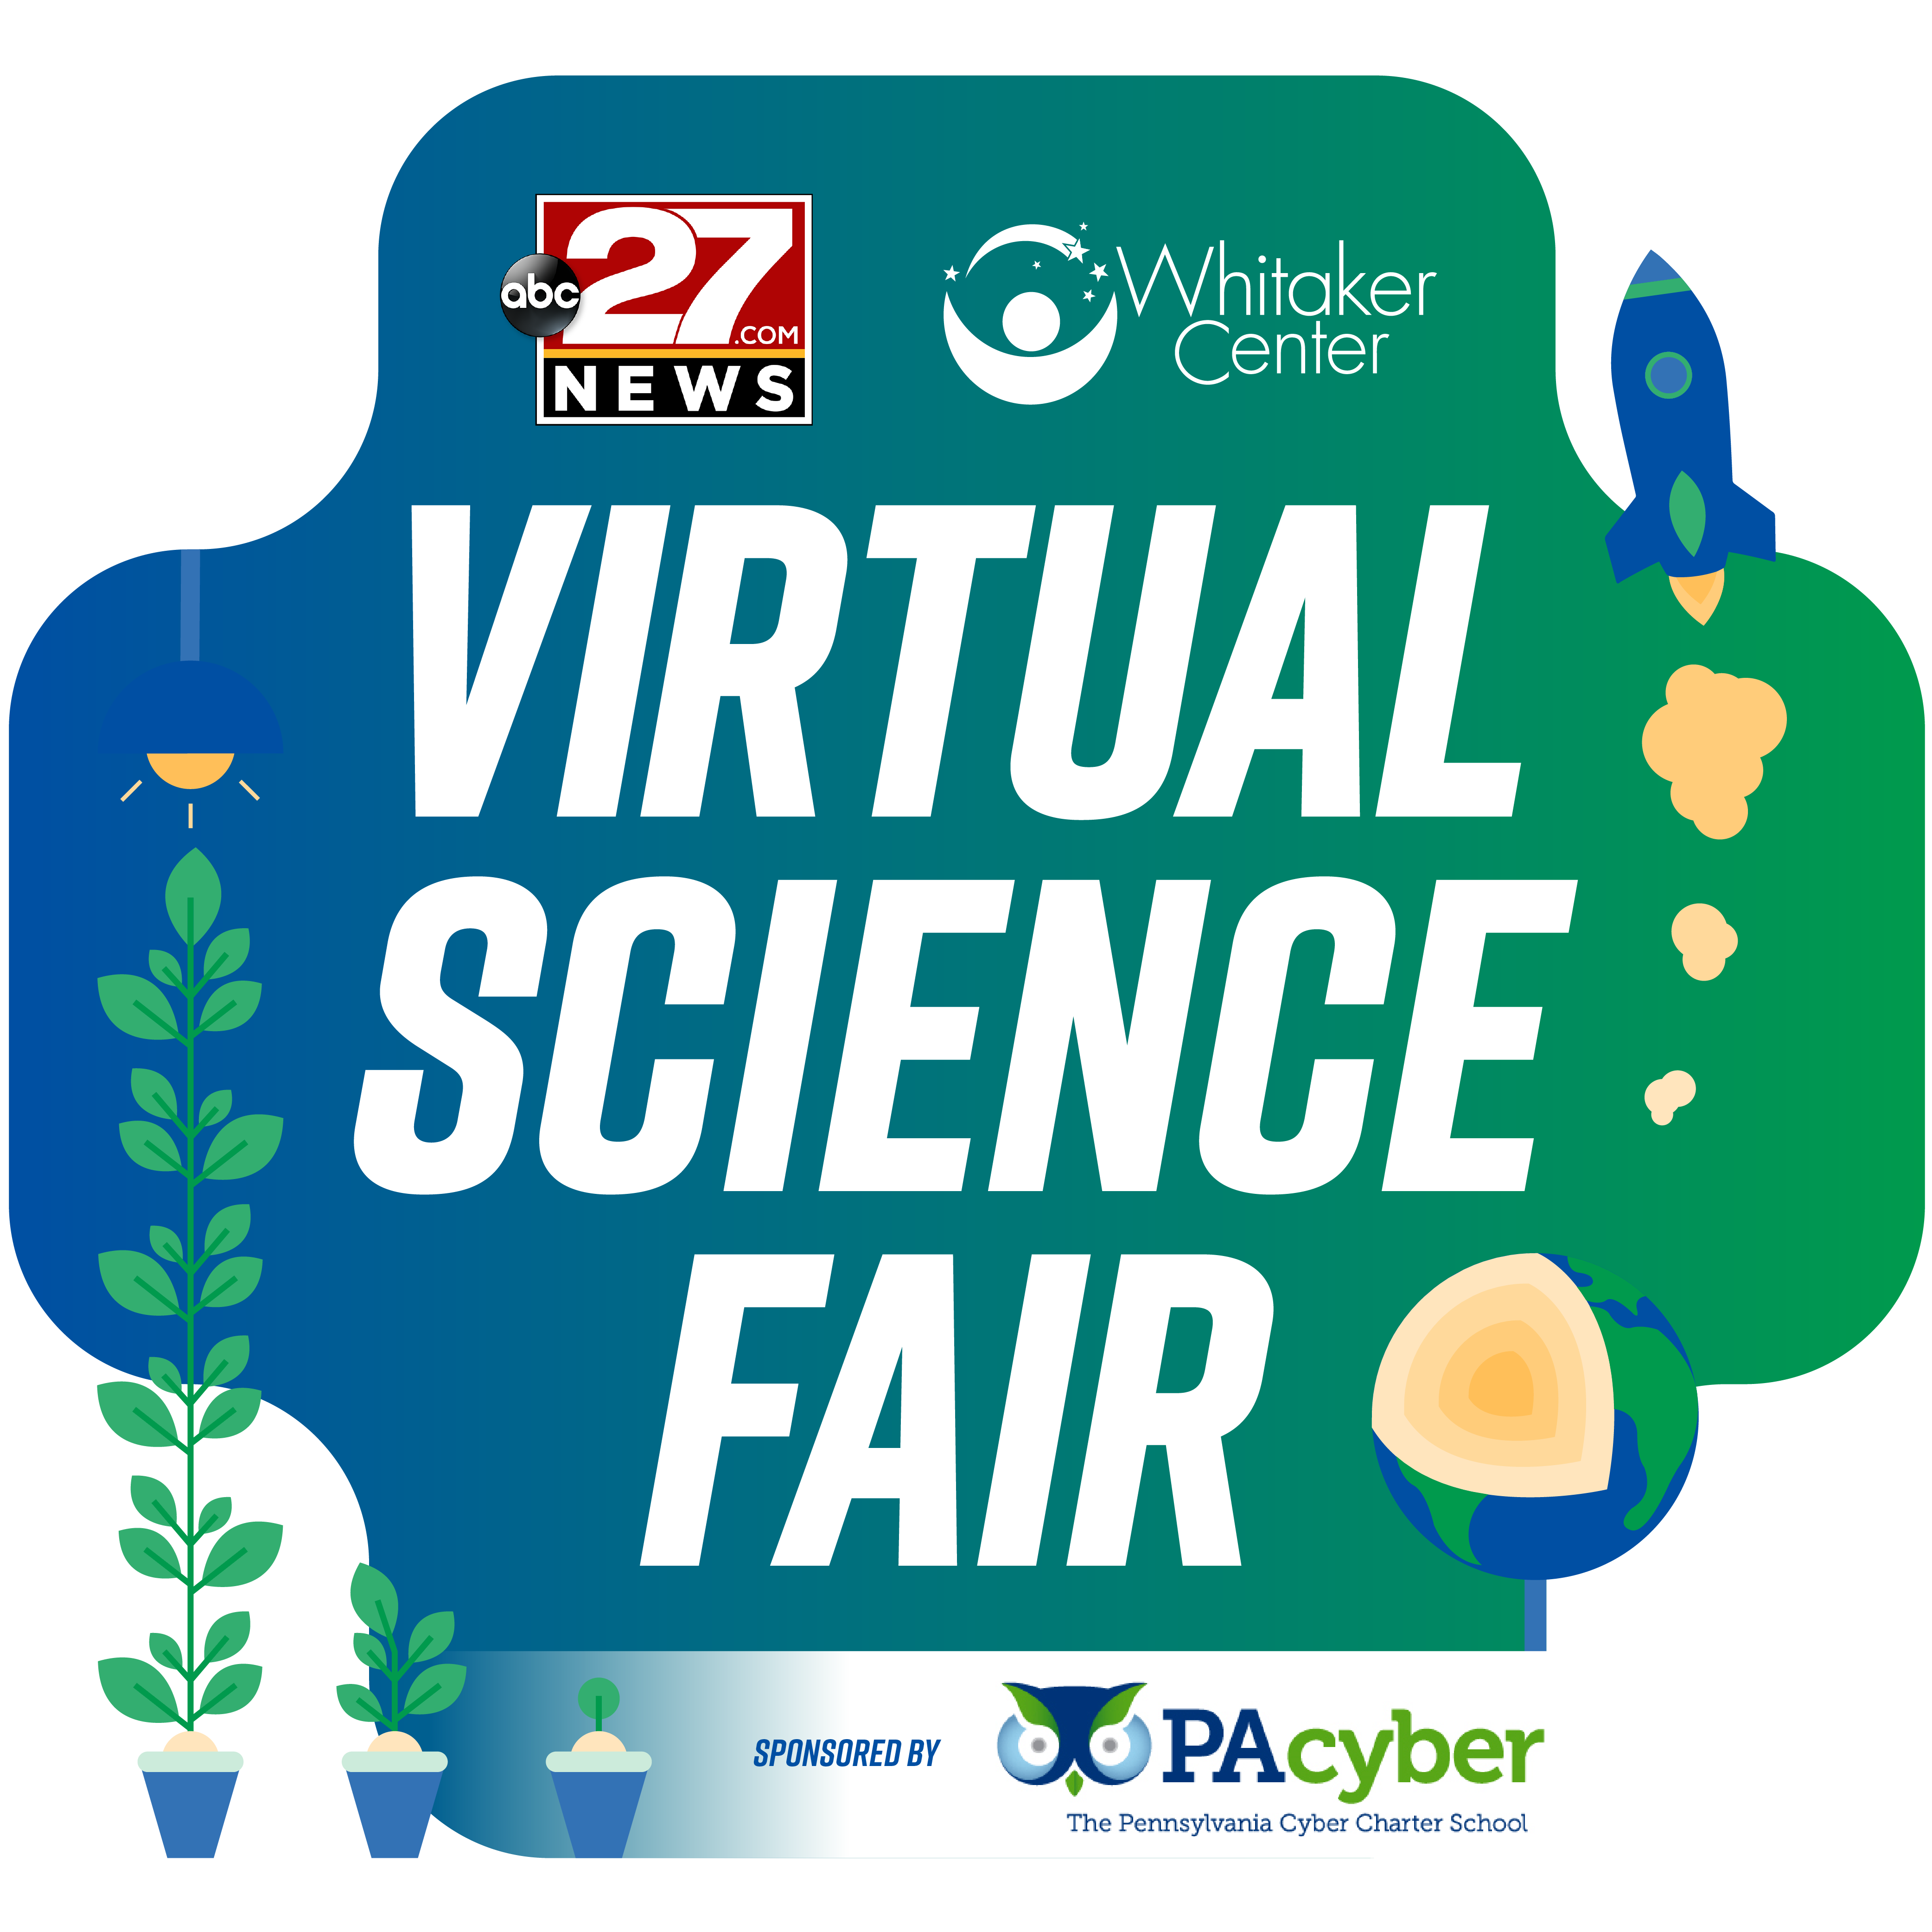 Virtual Science Fair Logo